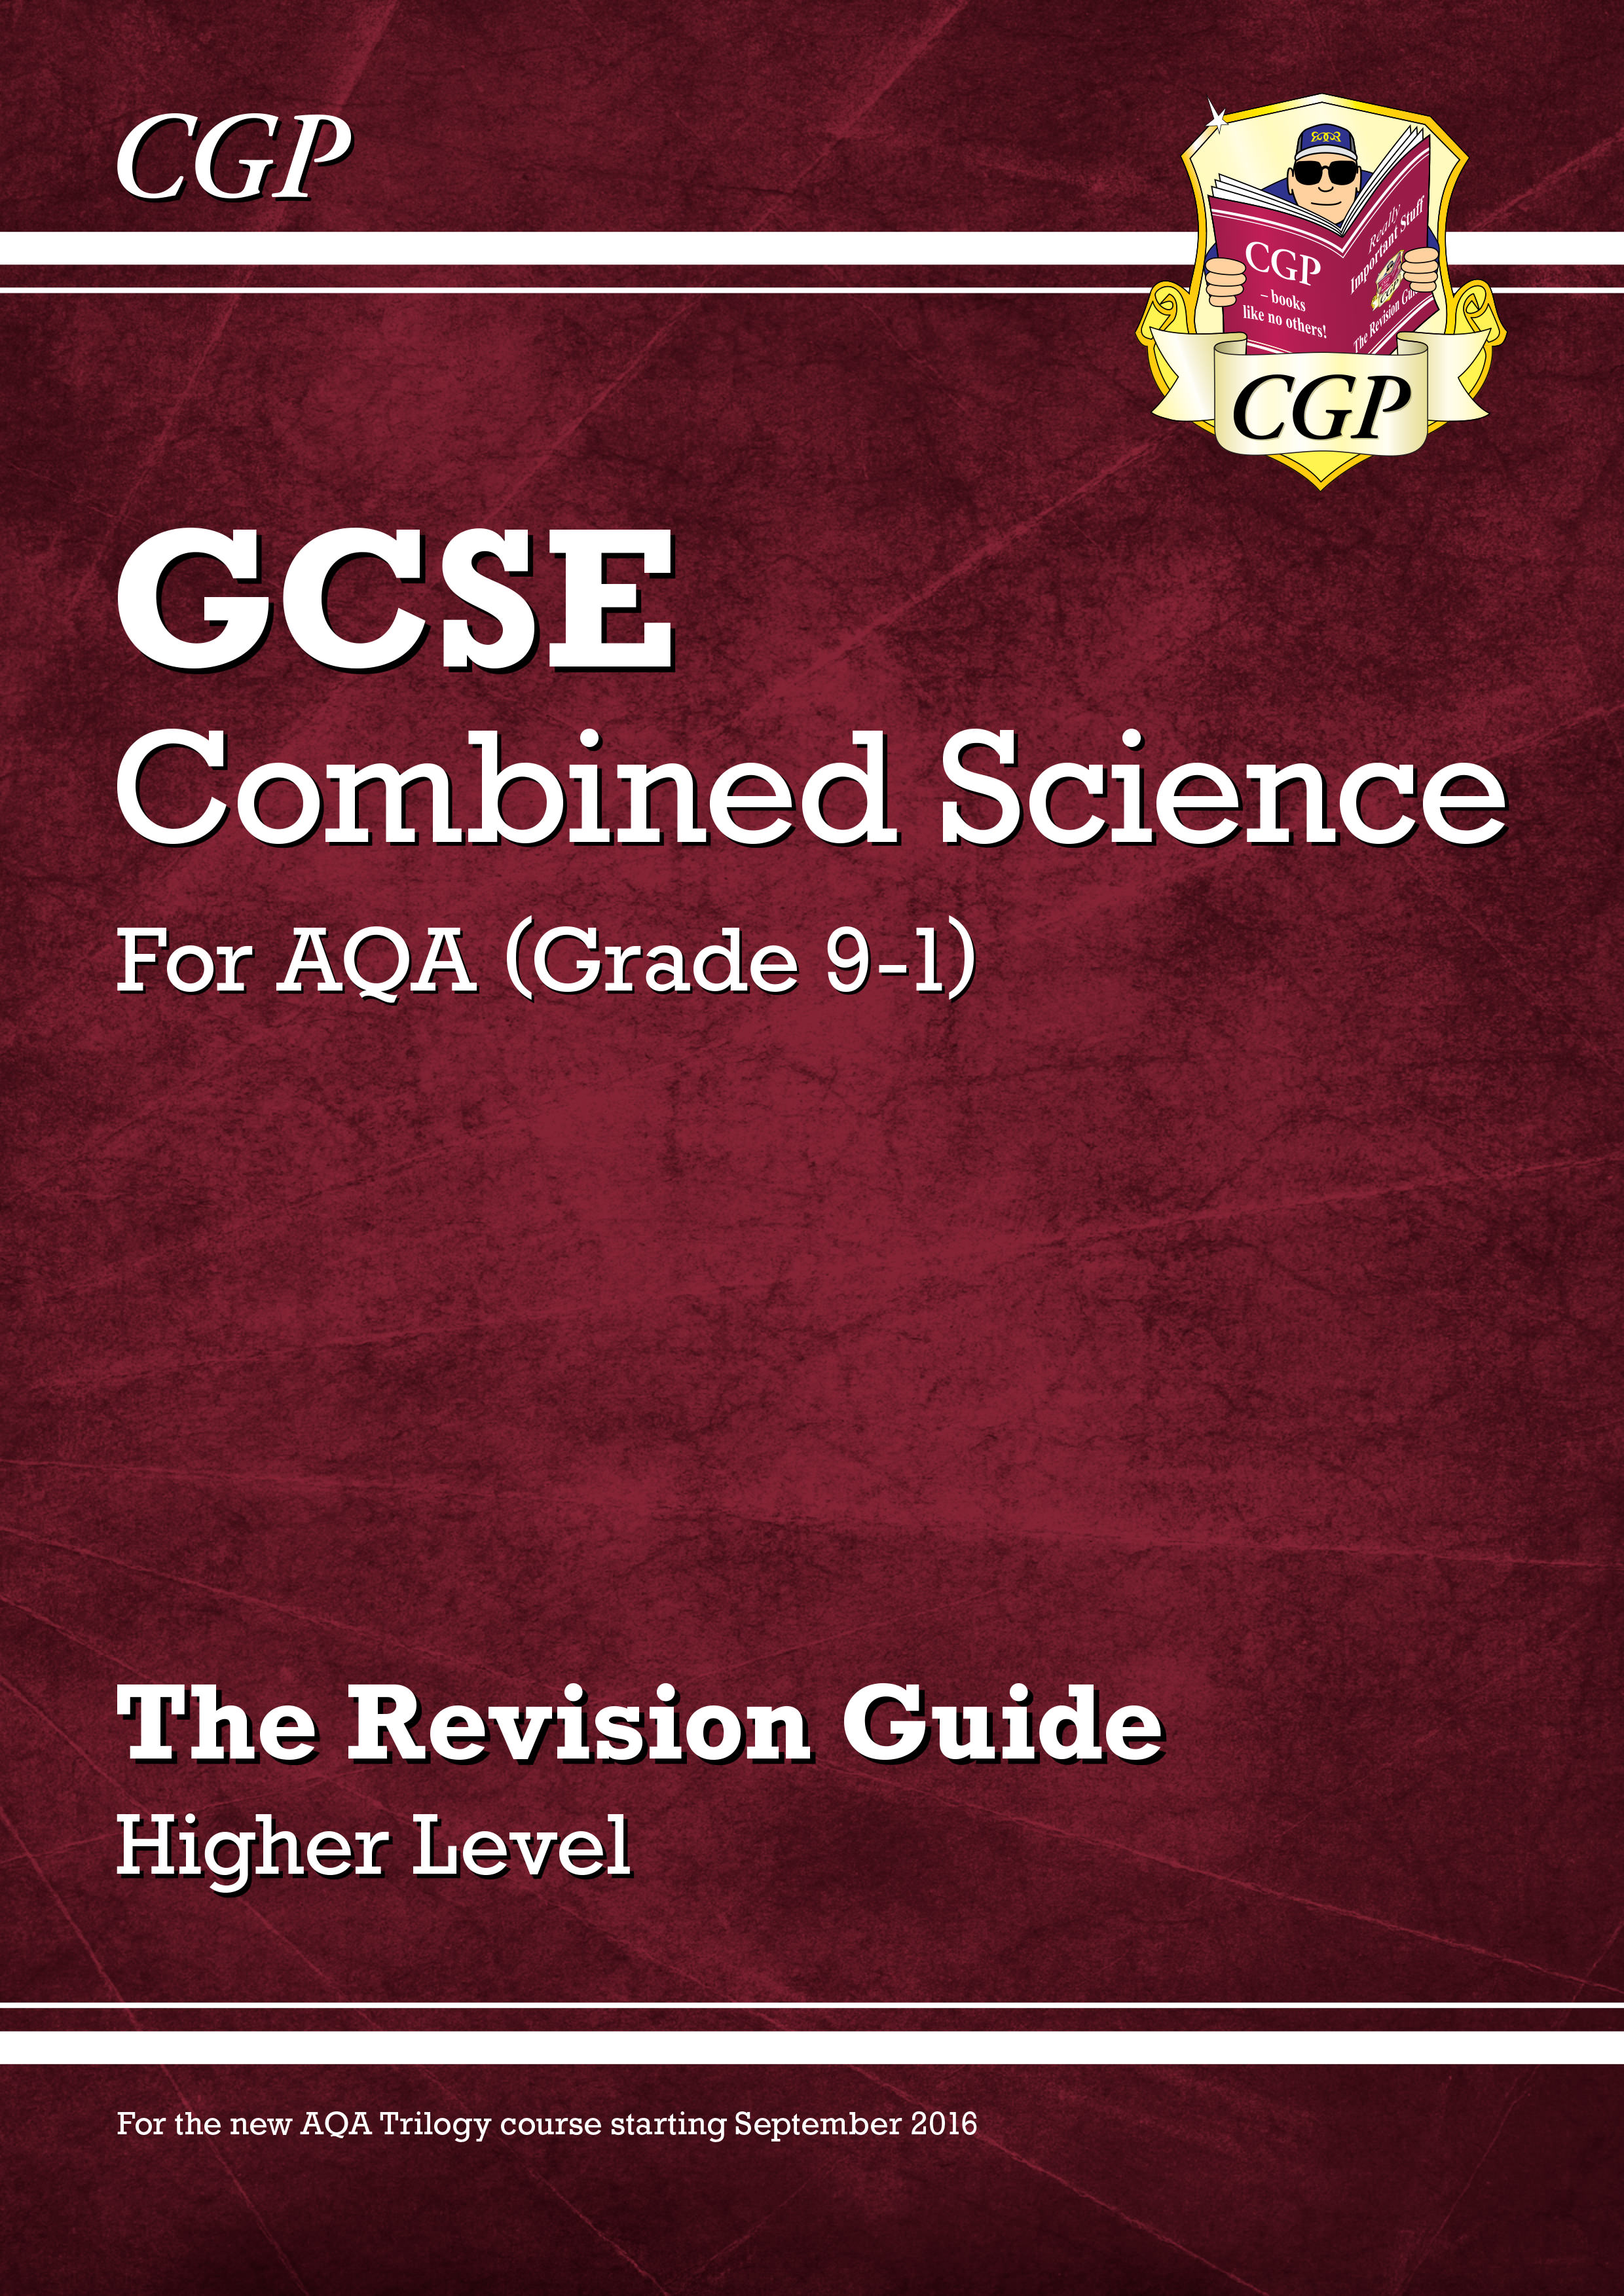 SAHR45DK - New Grade 9-1 GCSE Combined Science: AQA Revision Guide - Higher